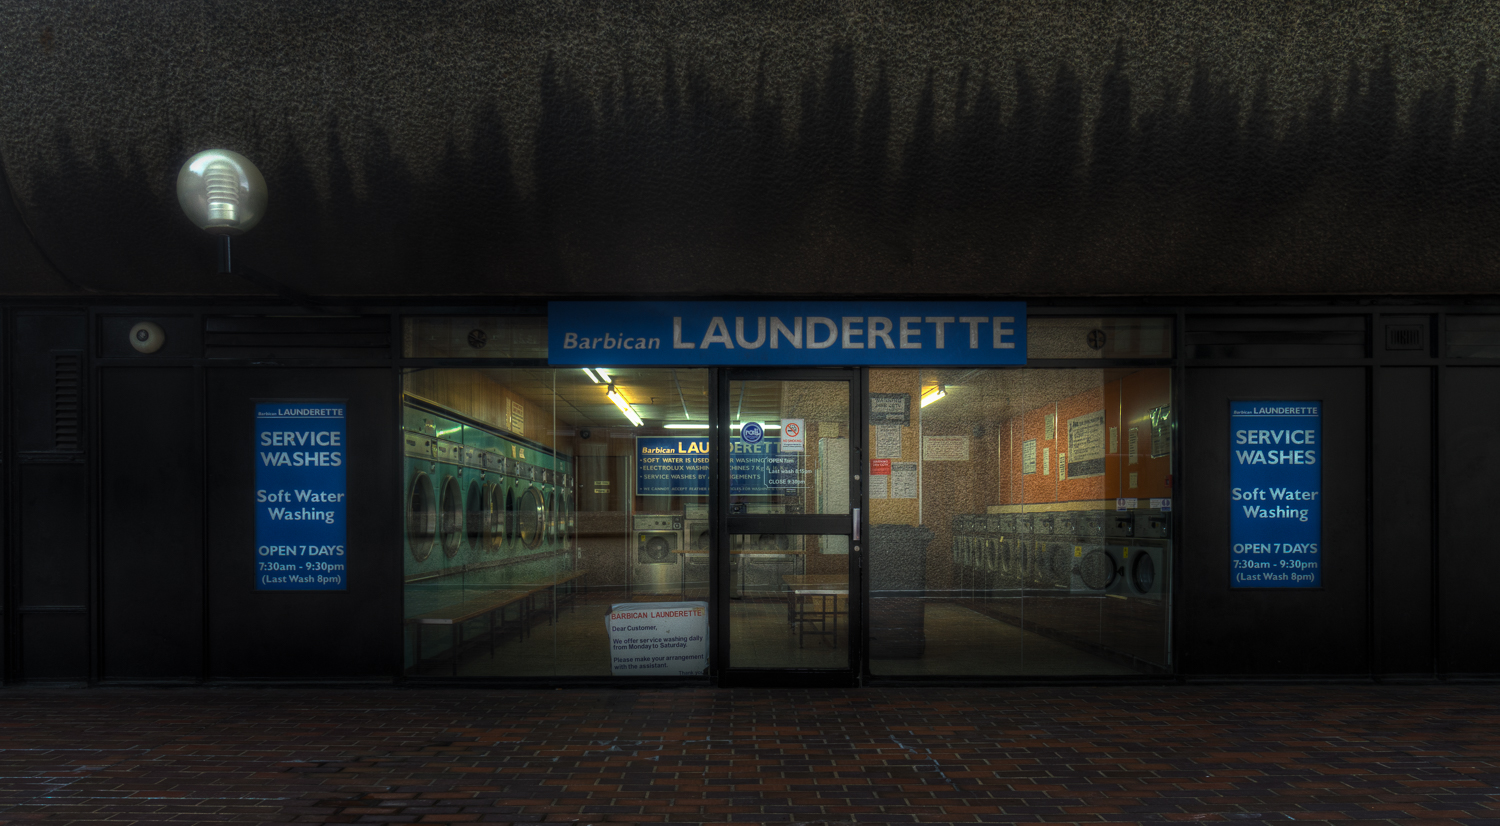 A Brutalist Laundrette at The Barbican